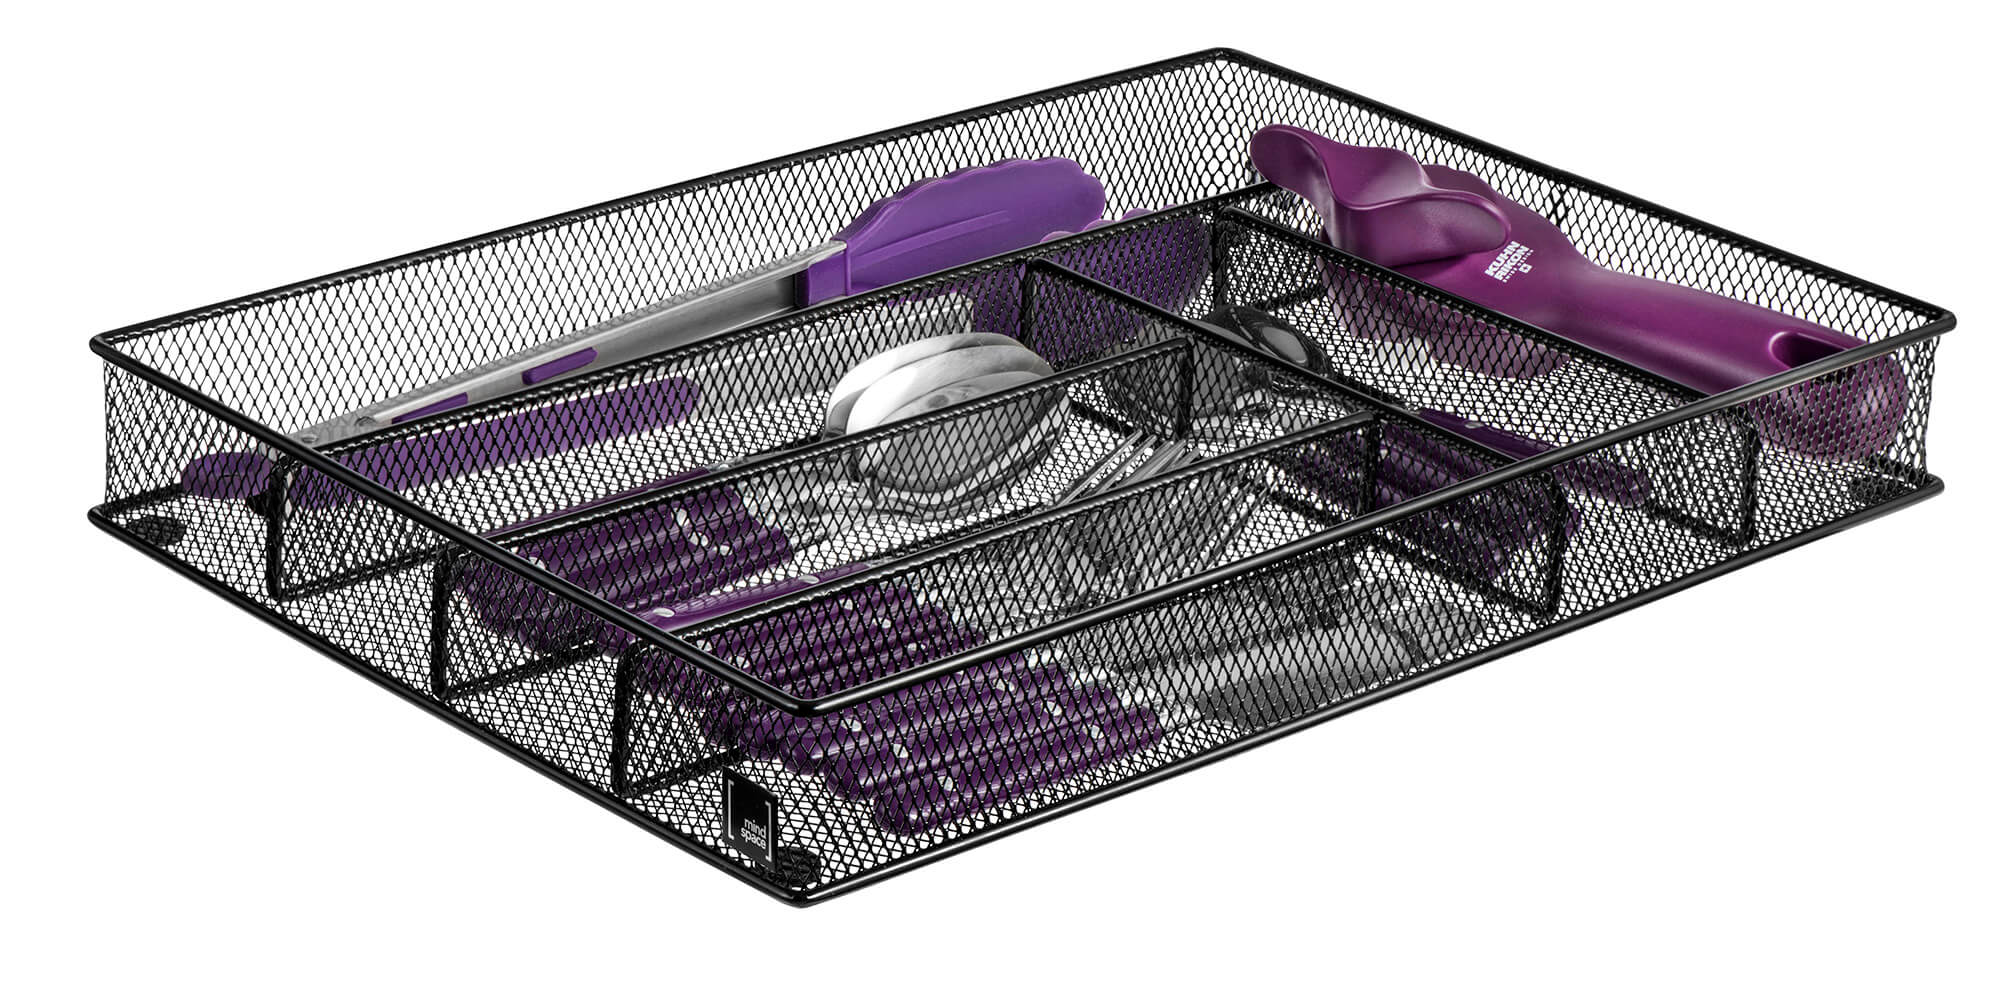 6 Compartment Cutlery Tray Mindspace